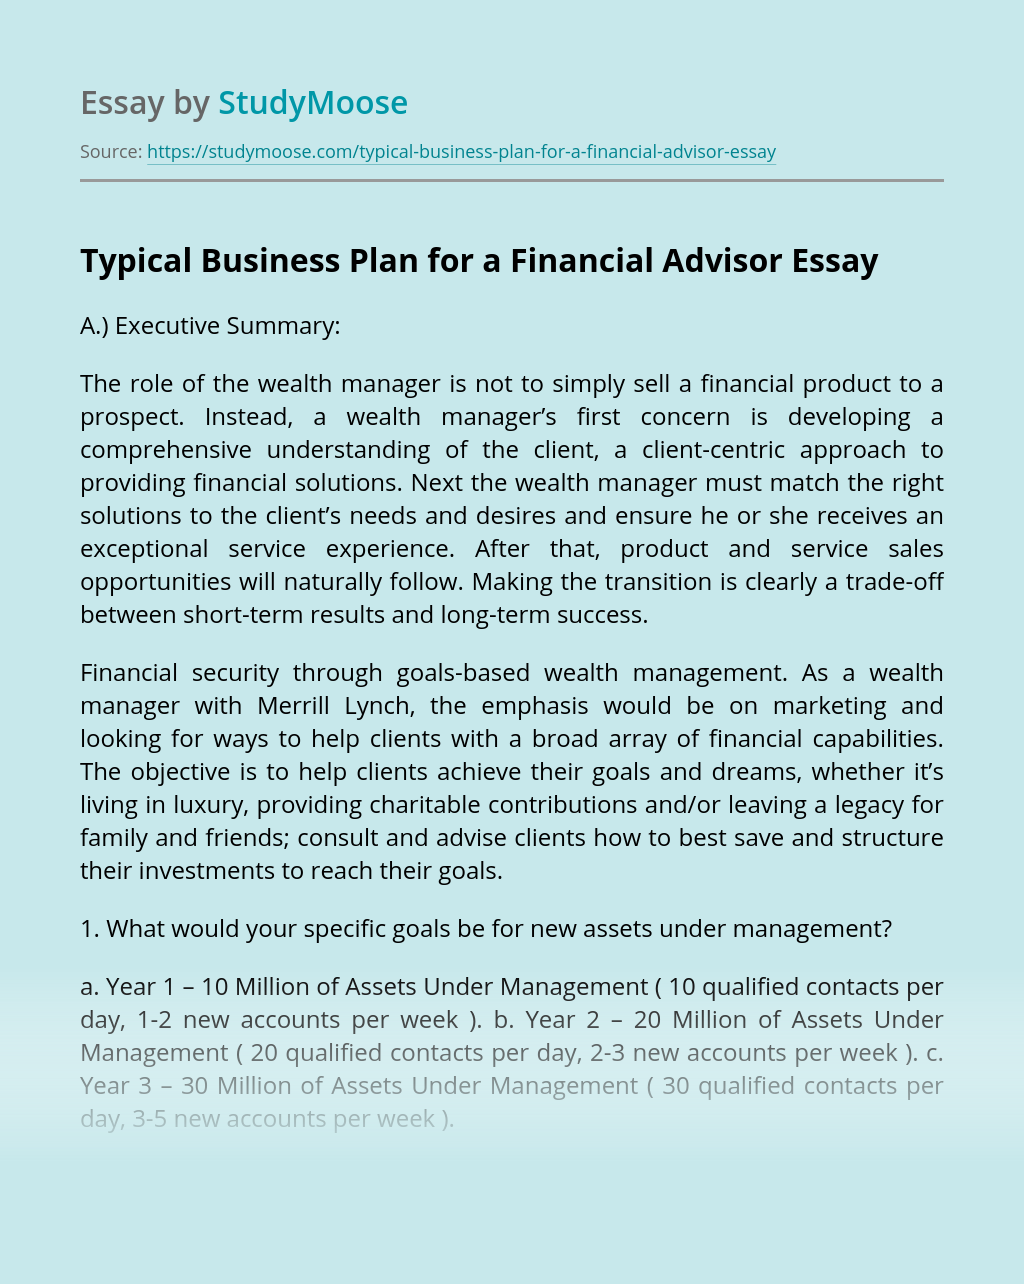 Typical Business Plan for a Financial Advisor